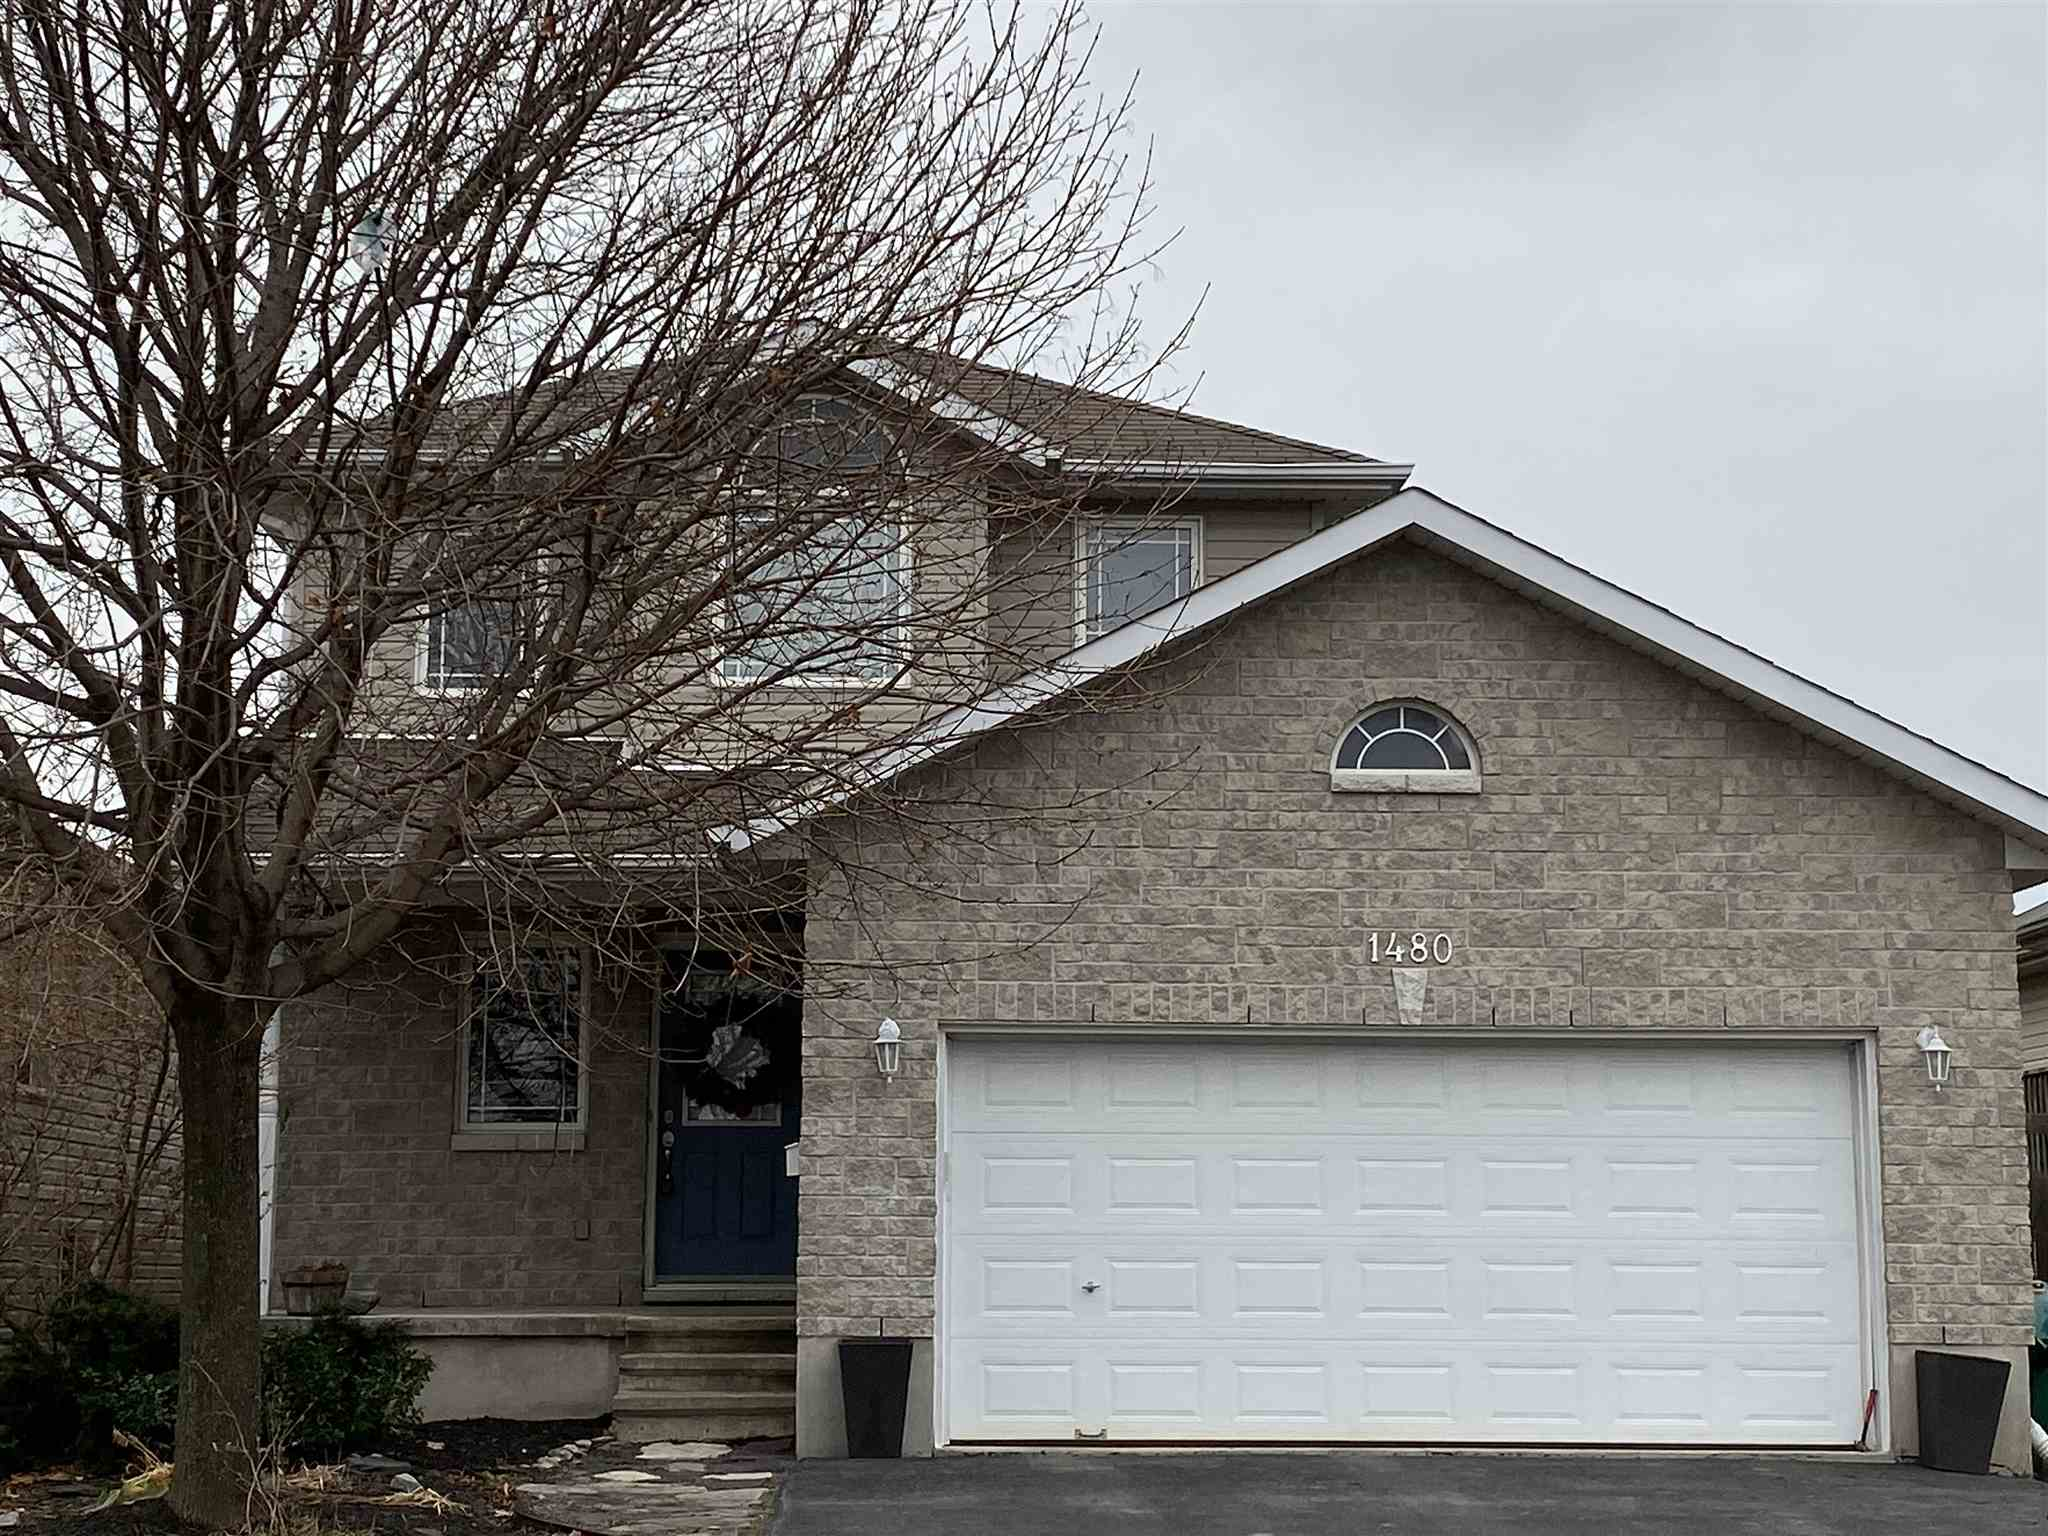 1480 Birchwood Drive, Kingston Ontario, Canada